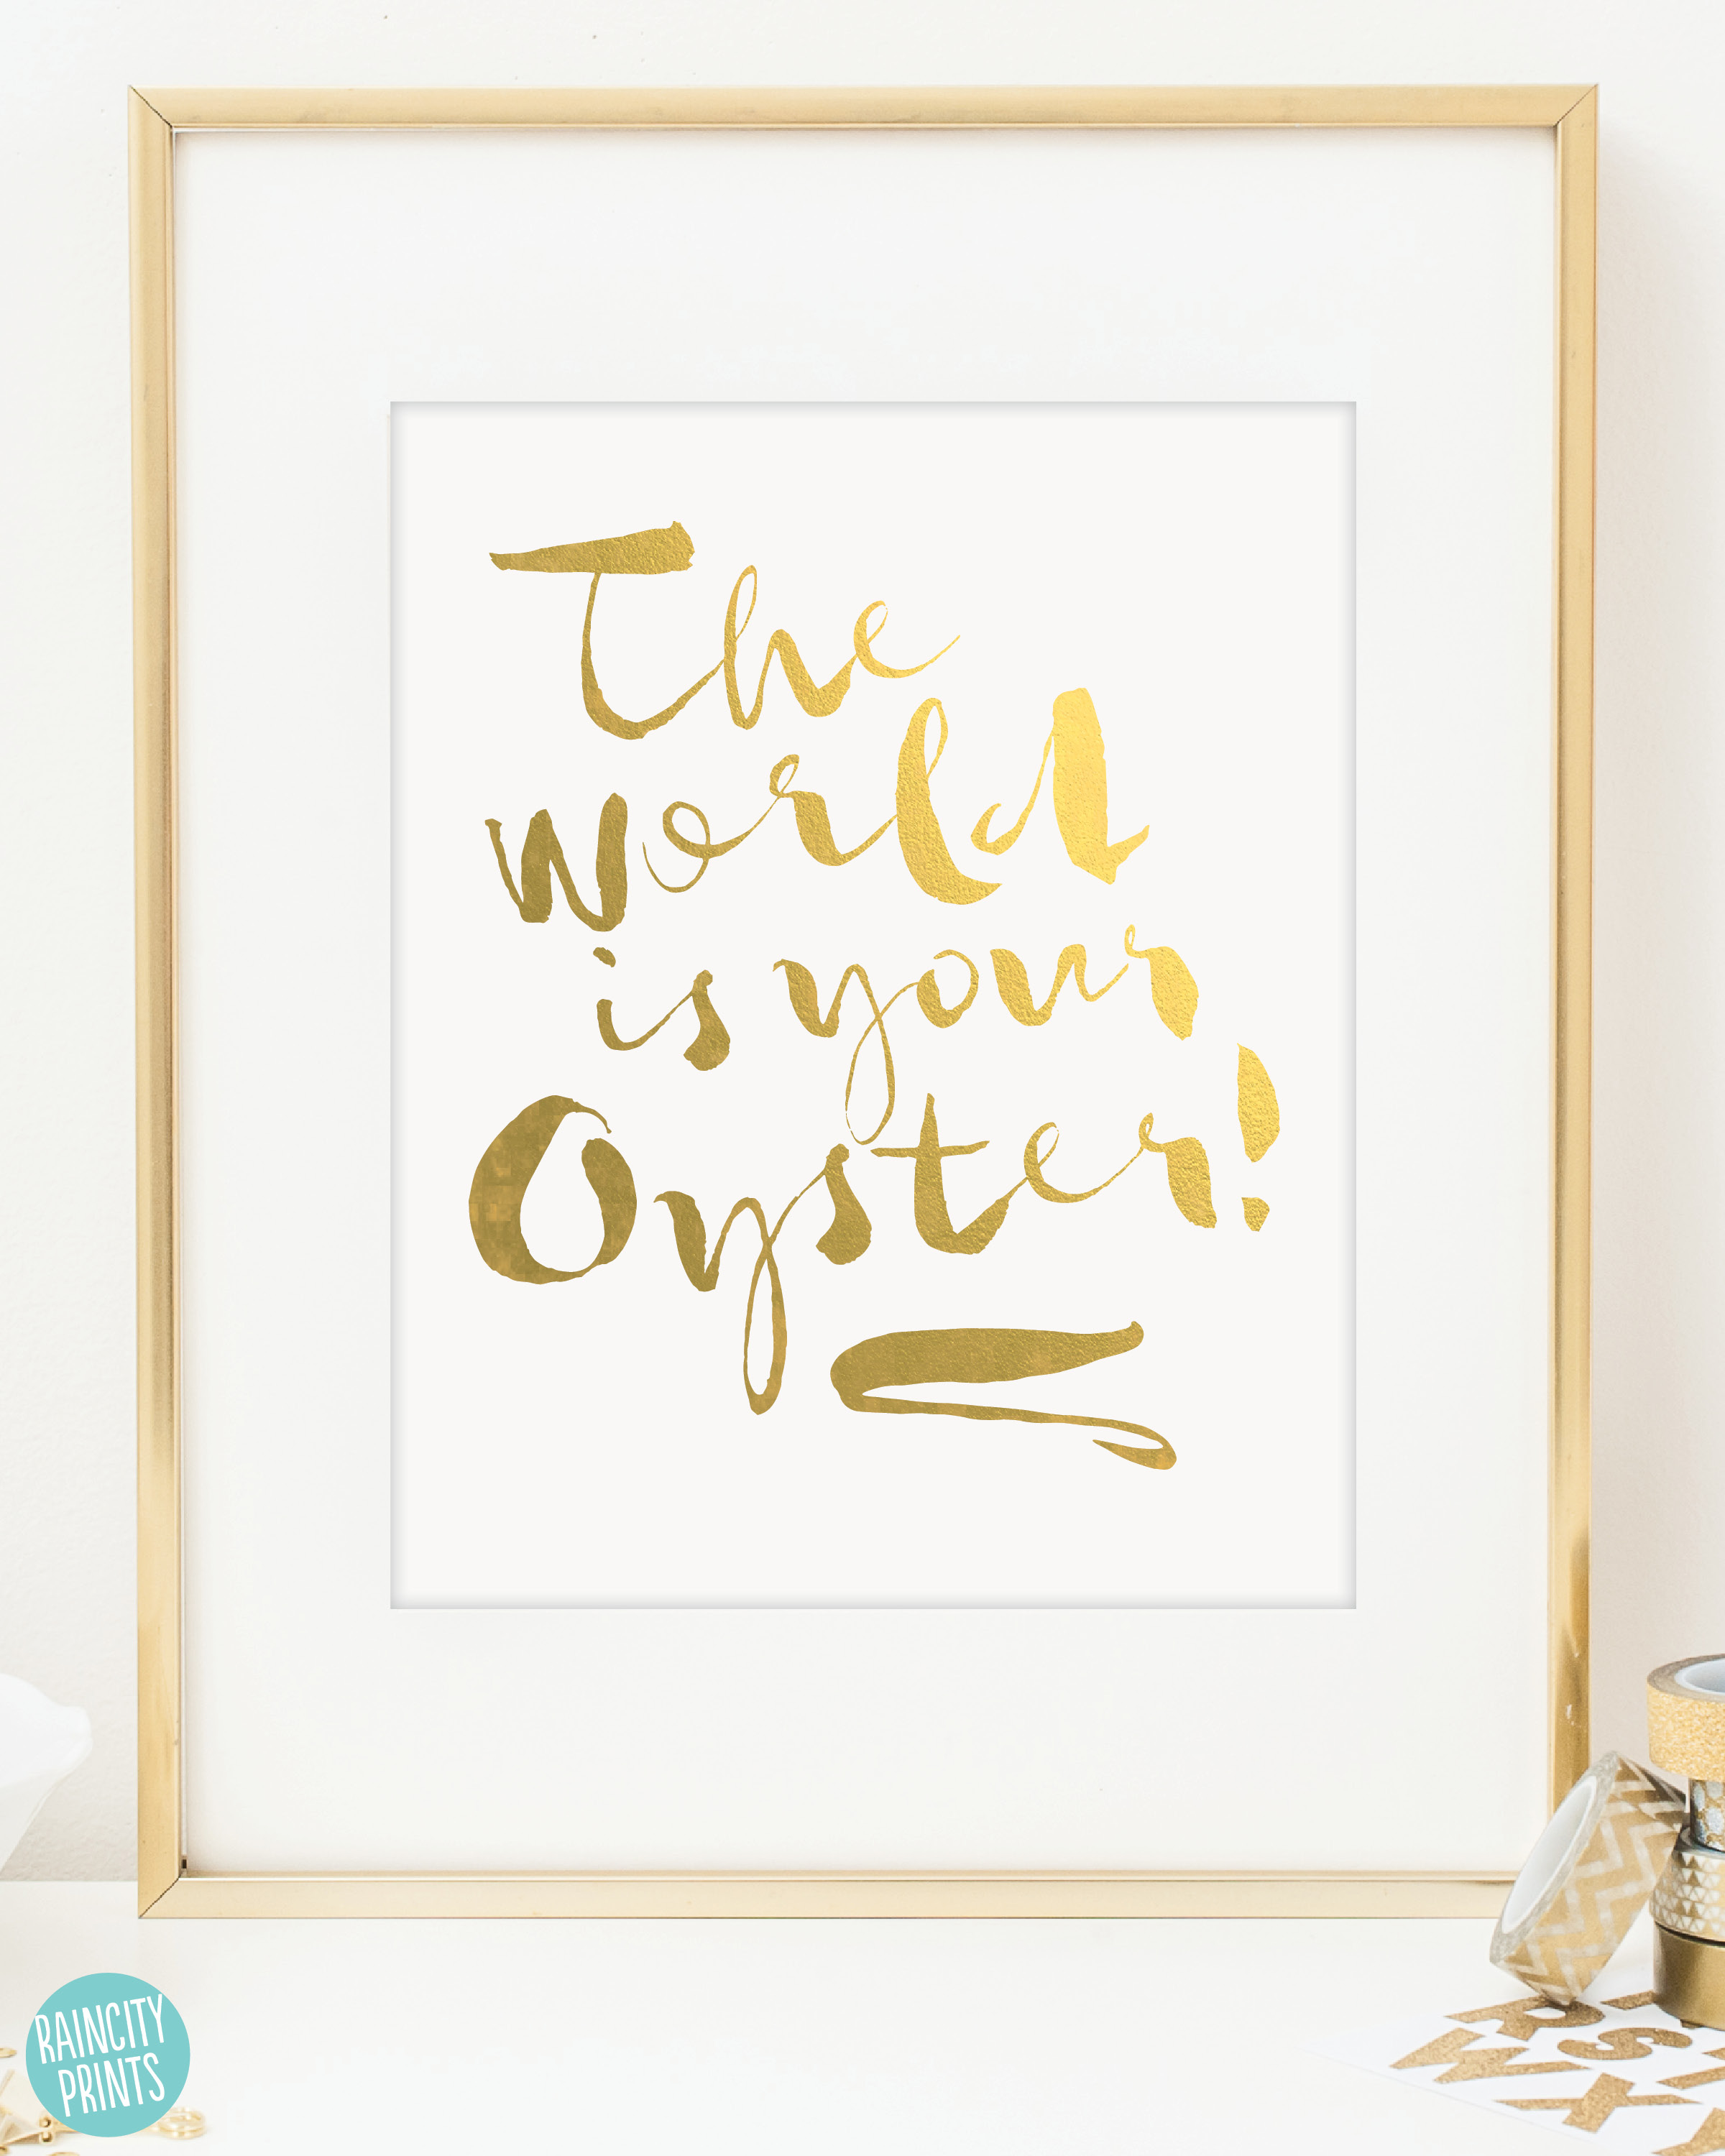 Worldisyouroyster.gold.framed